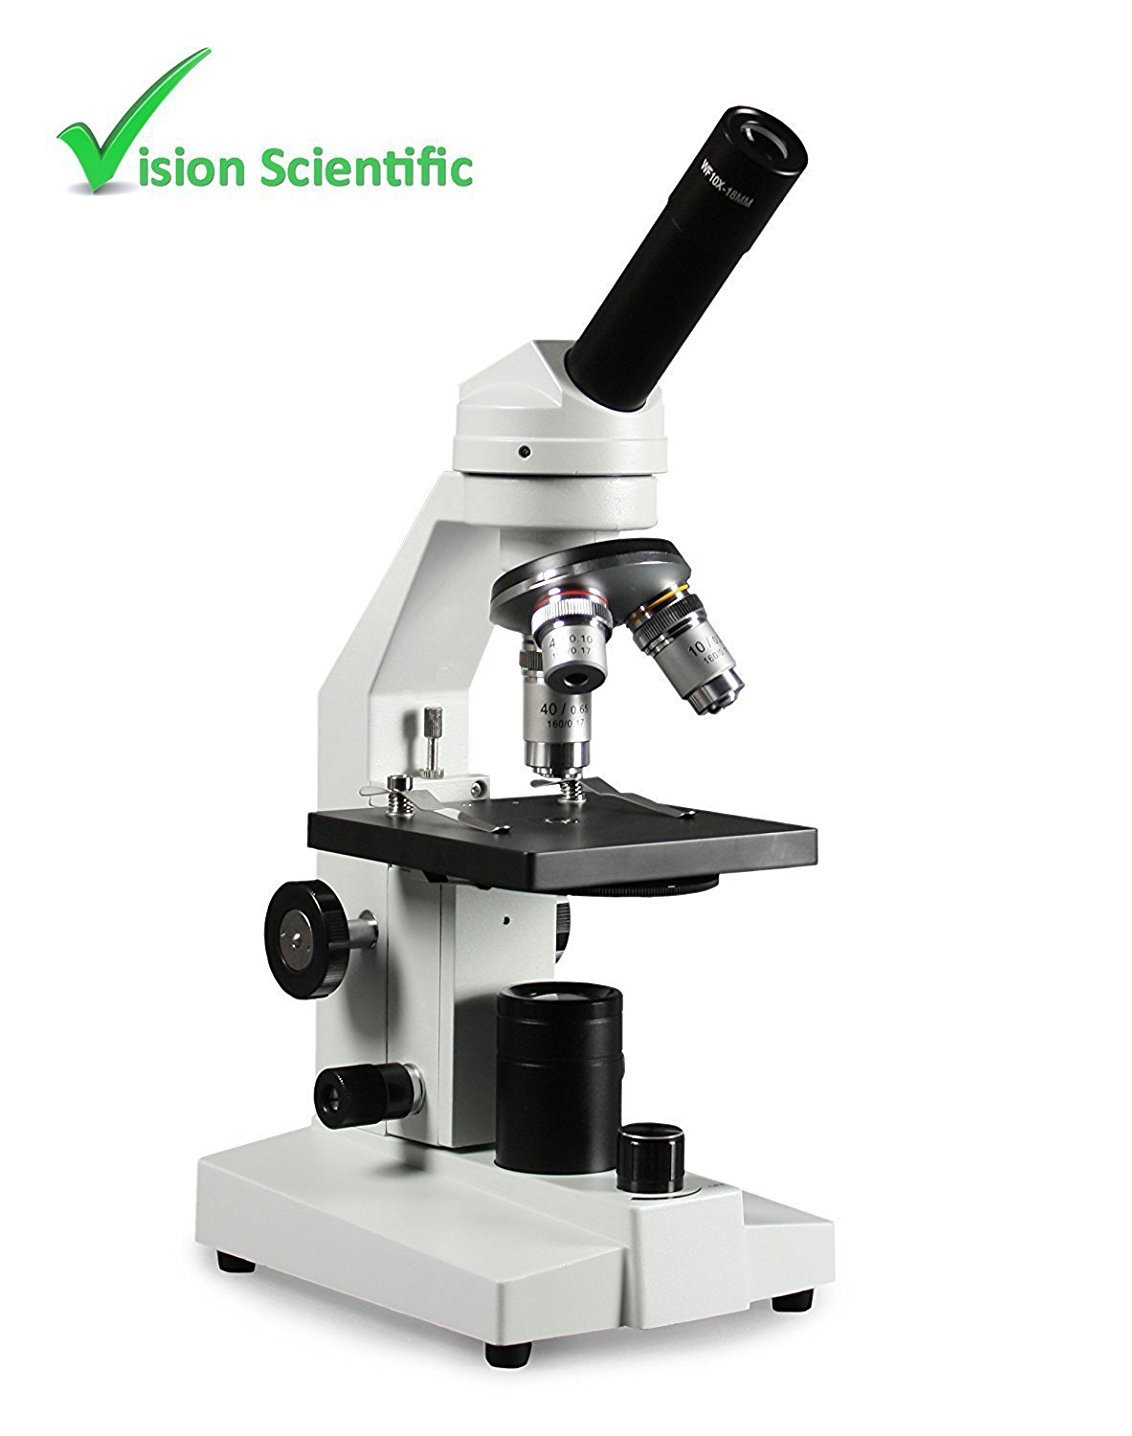 Vision Scientific VME0020-E2 Student LED Microscope, 10x WF and 20x WF Eyepiece, 40x–800x Magnification, LED Illumination with light intensity control, Coarse and Fine Focus